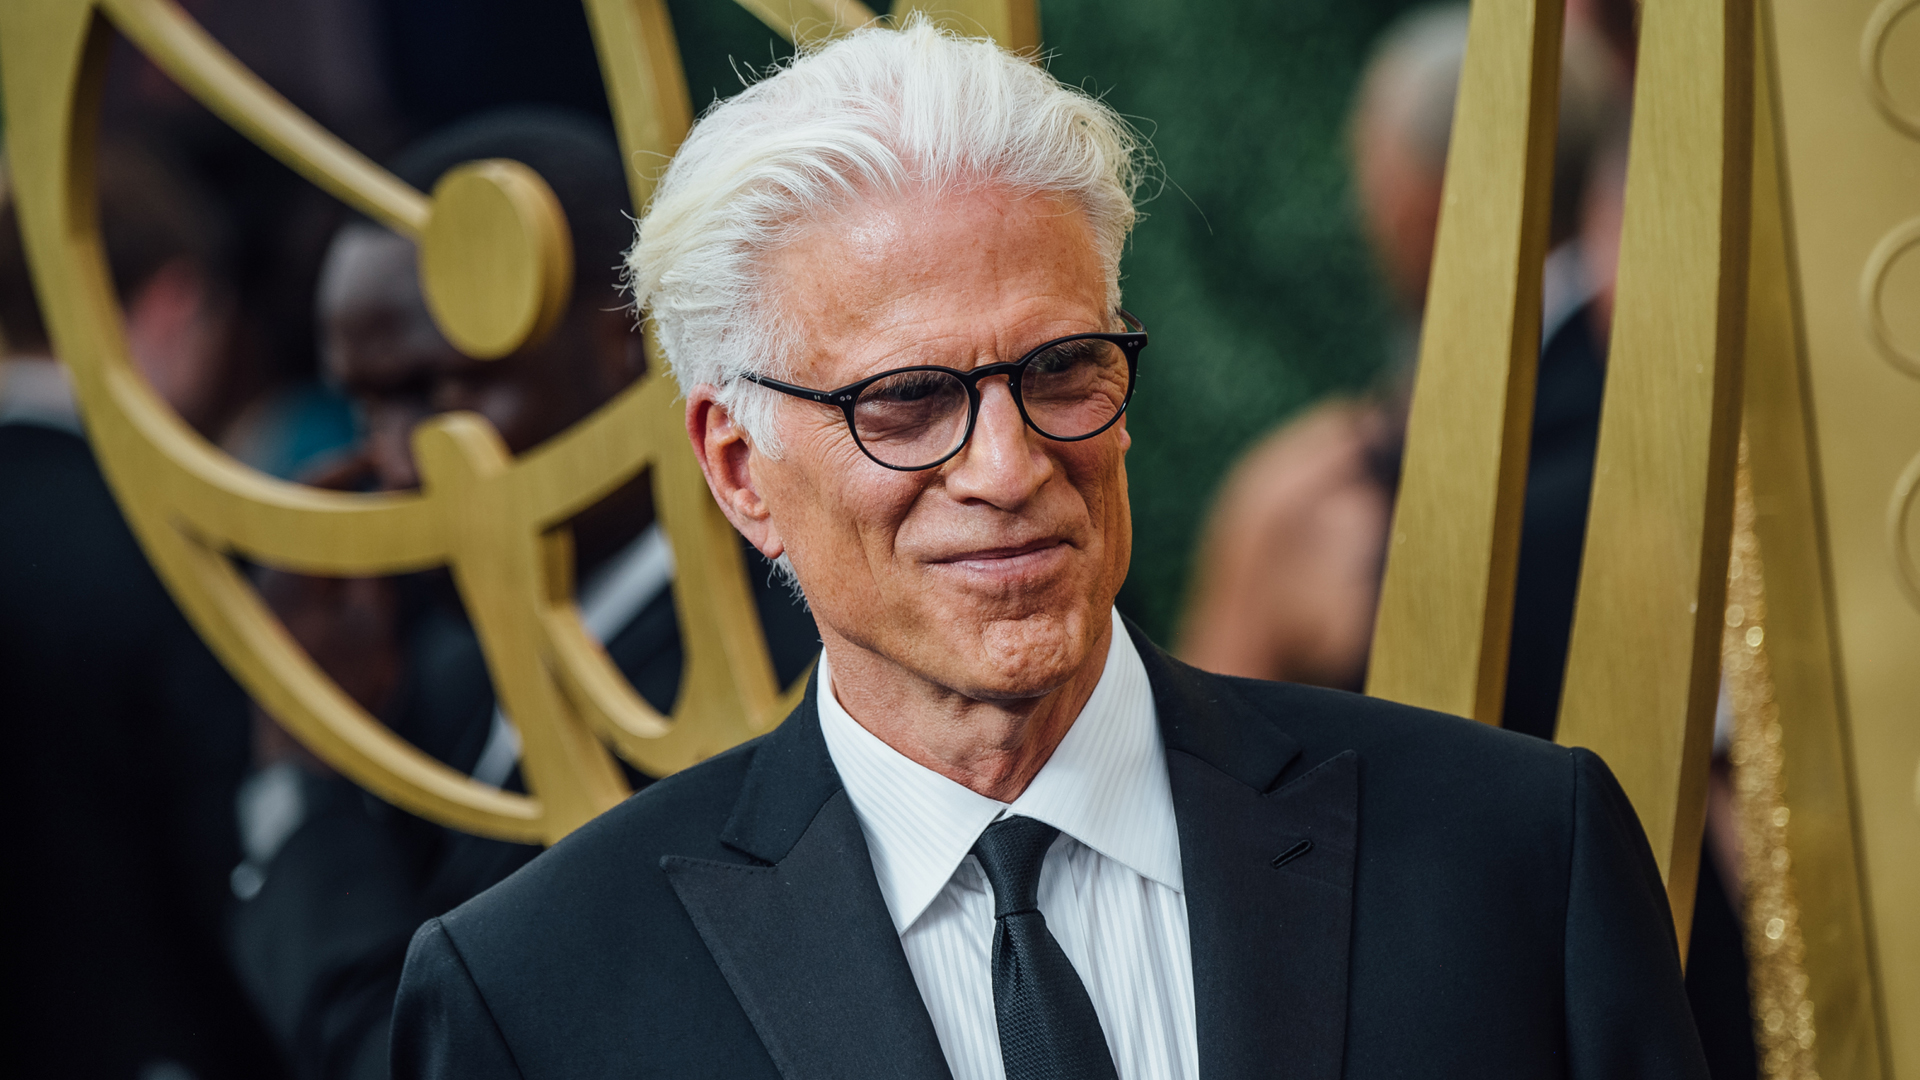 Ted Danson arrives at the 71st Emmy Awards at Microsoft Theater on Sept. 22, 2019 in Los Angeles. (Credit: Emma McIntyre/Getty Images)